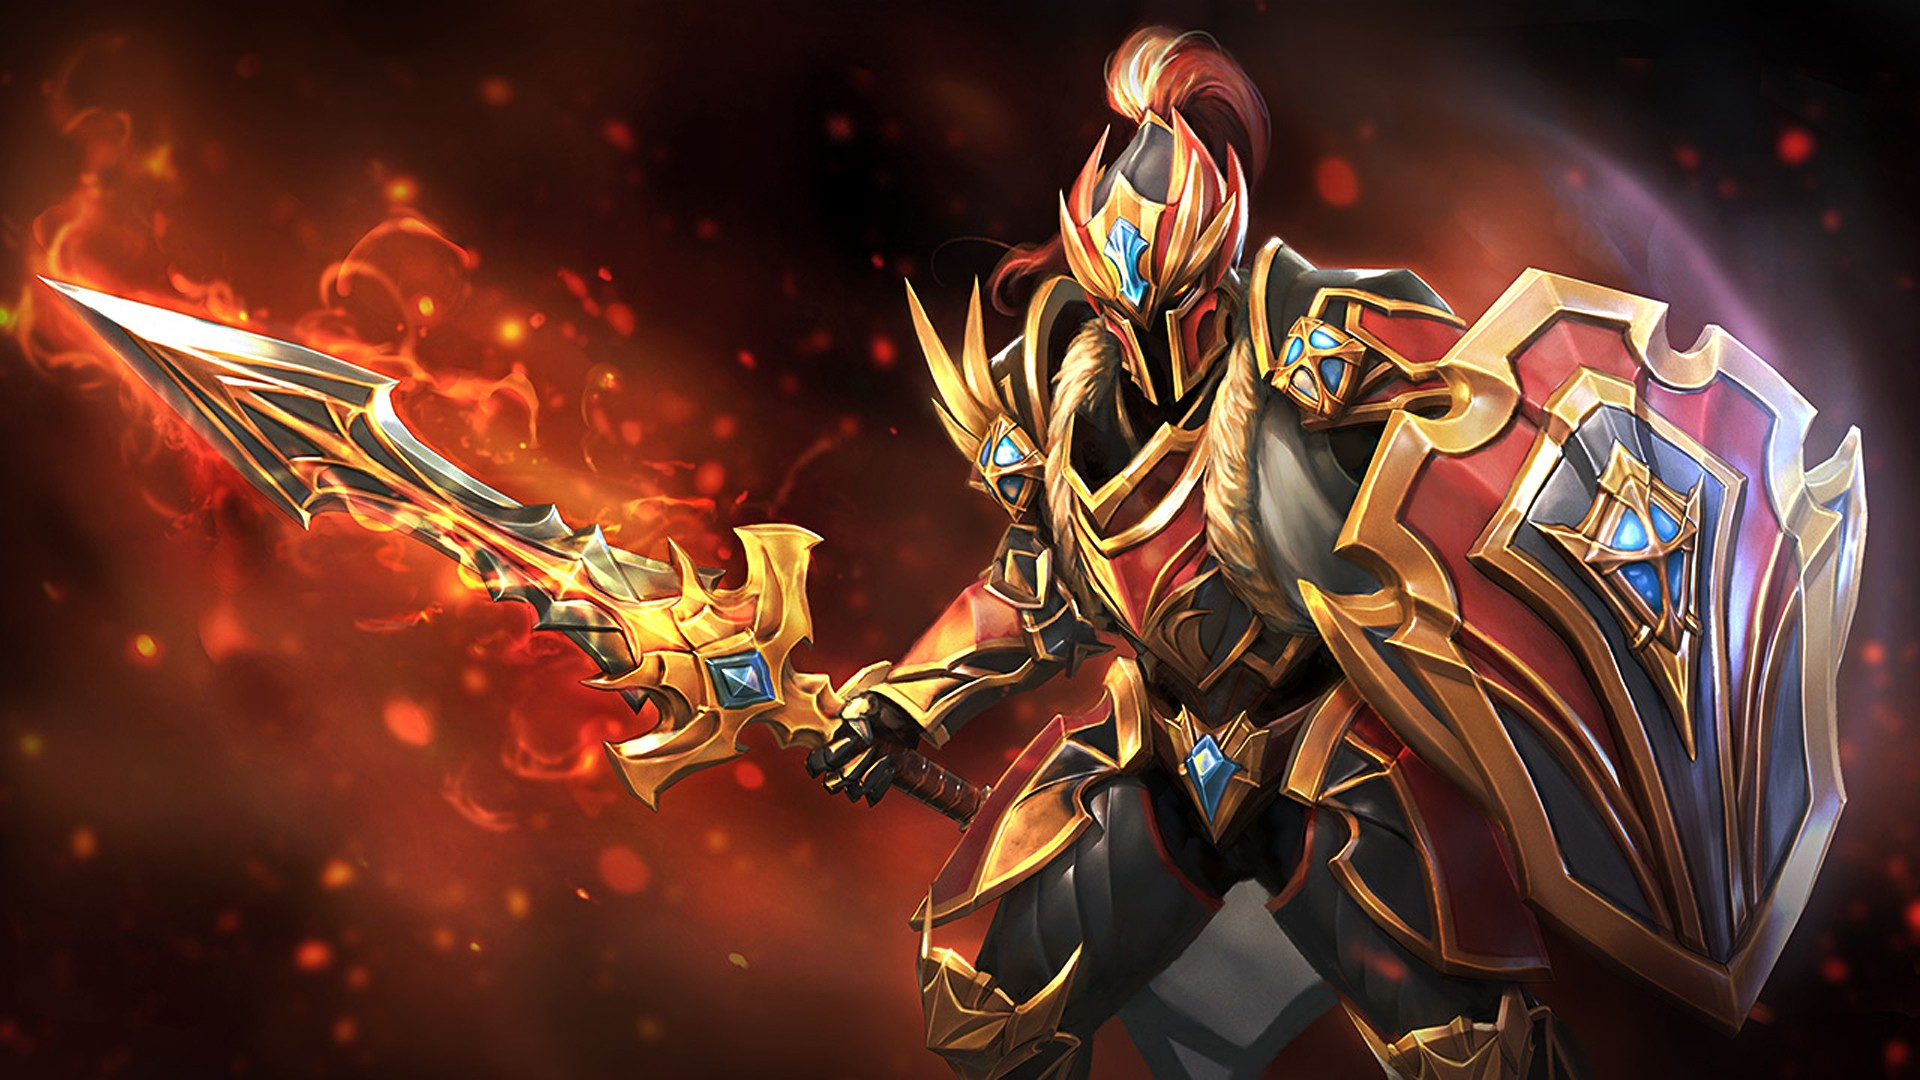 1920x1080 Dragon Knight Dota 2 Wallpaper 3